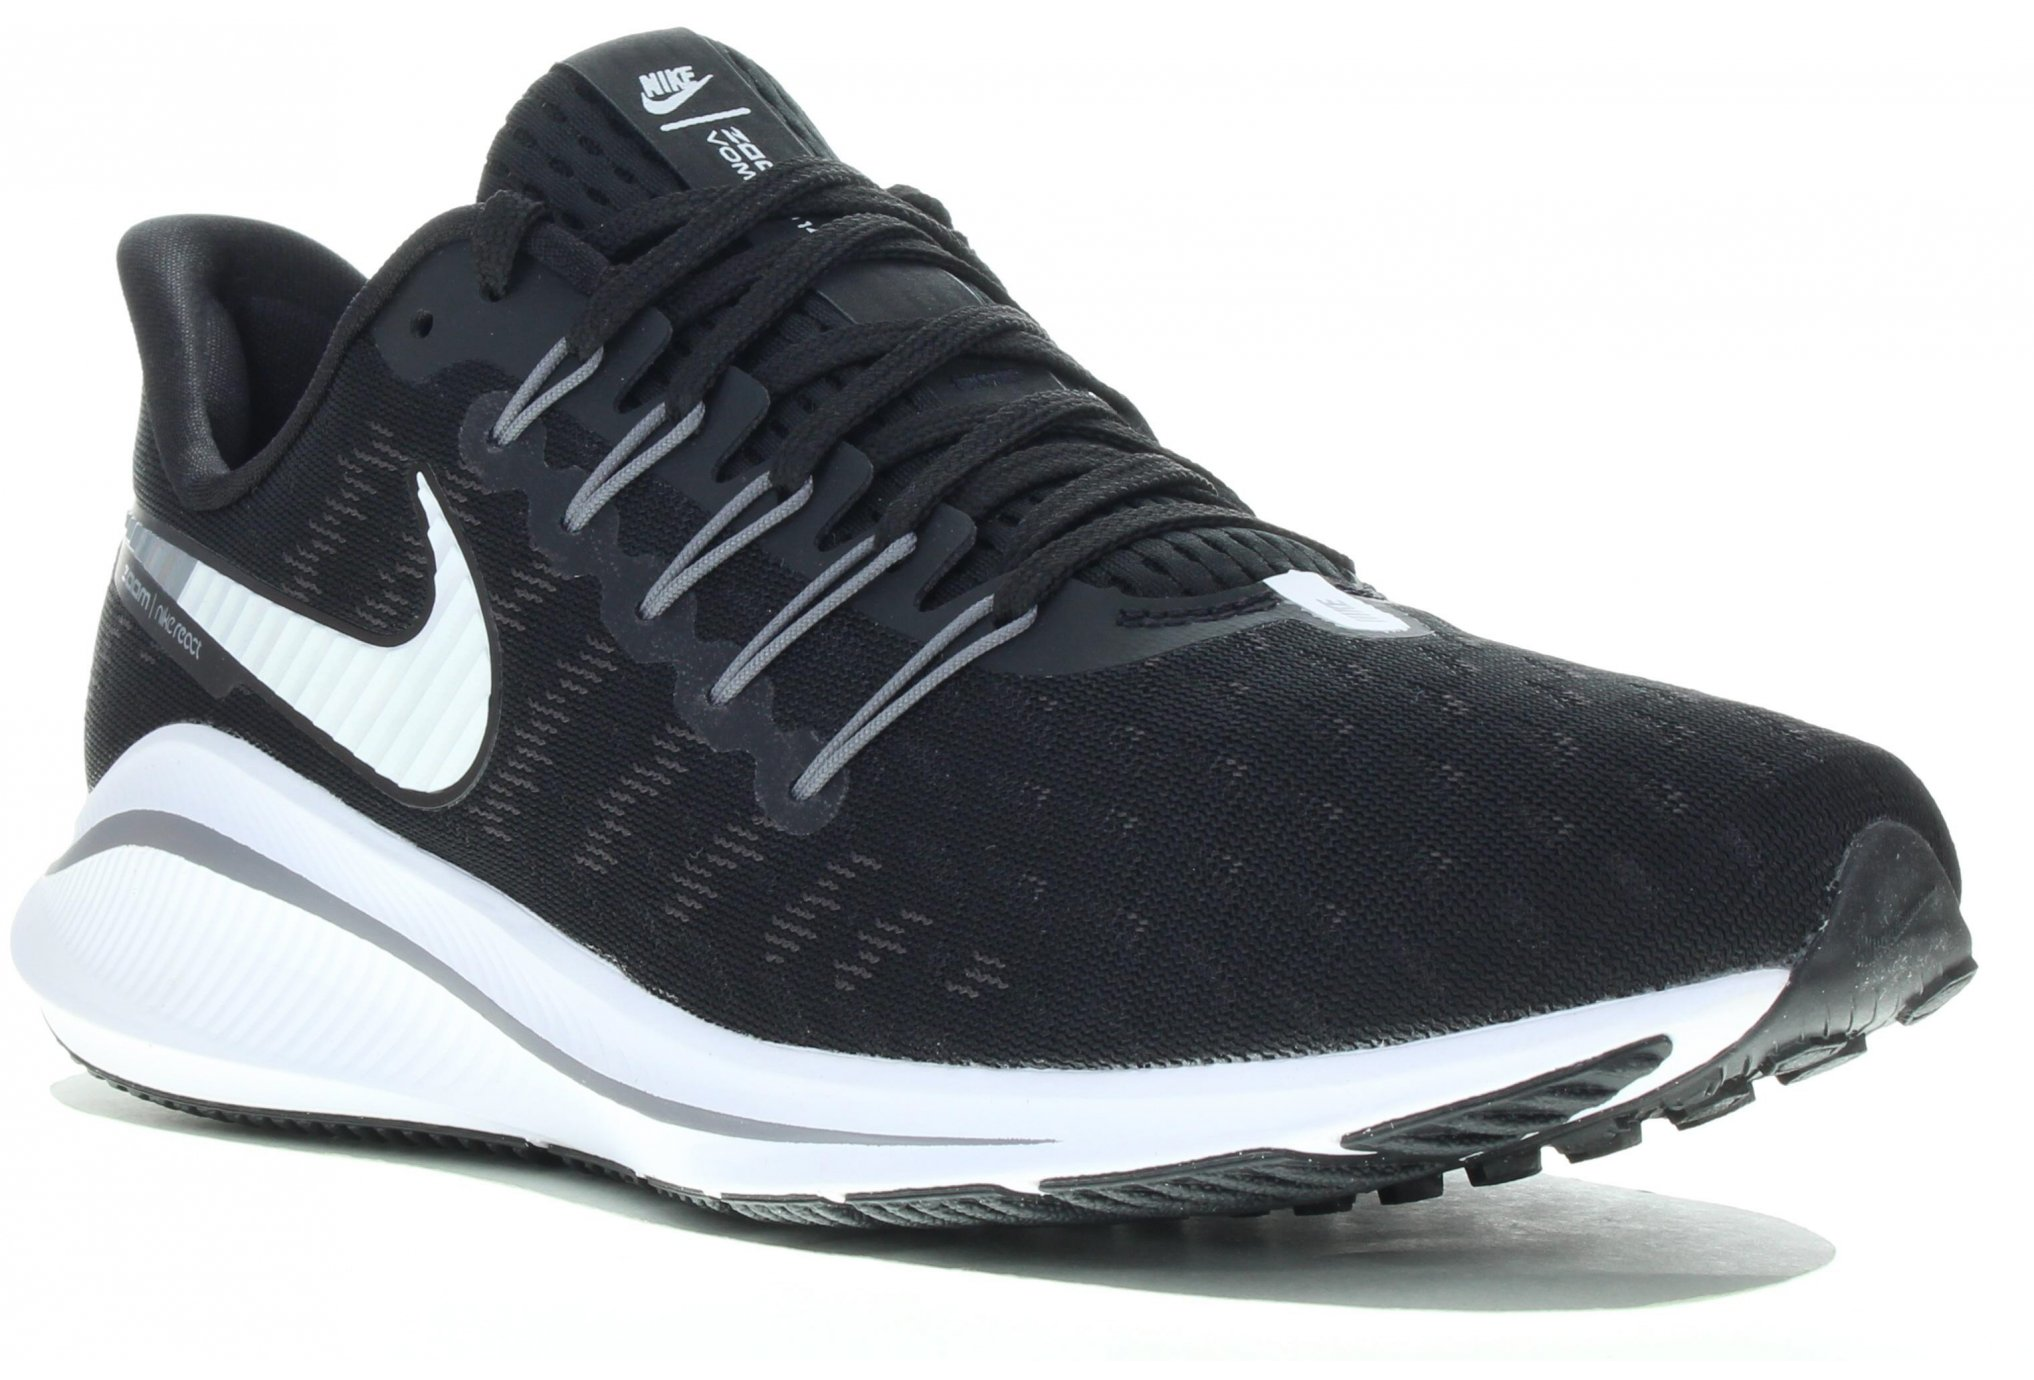 Nike Air Zoom Vomero 14 Chaussures homme